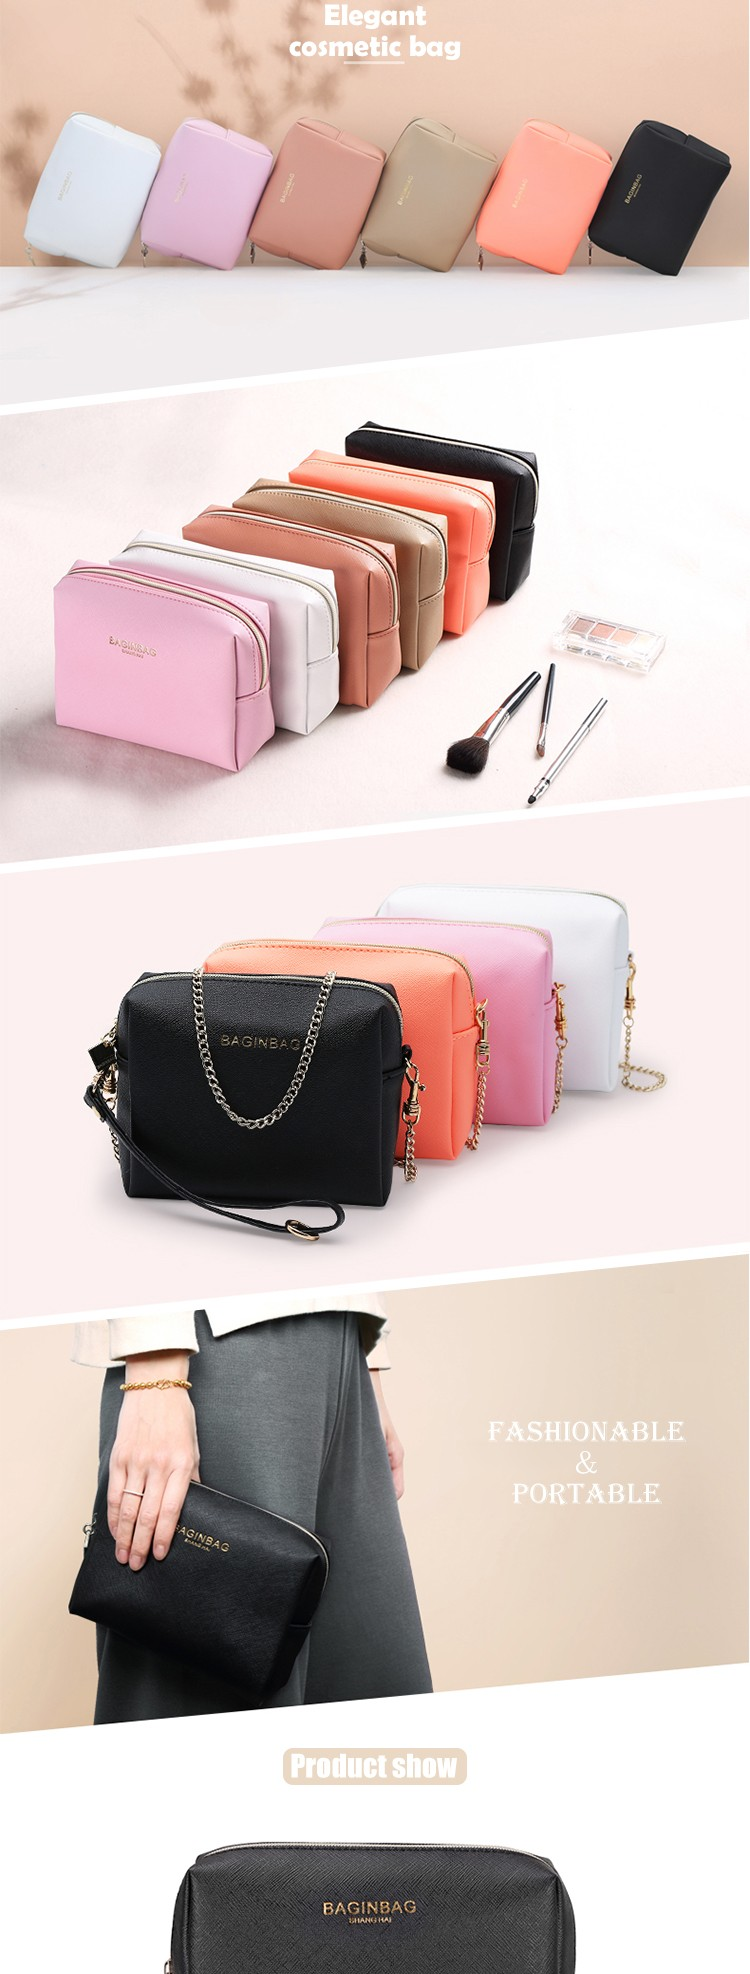 Branded promotional designer beautiful cute zipper toiletry pouch cosmetic  bag 83169eb7d2